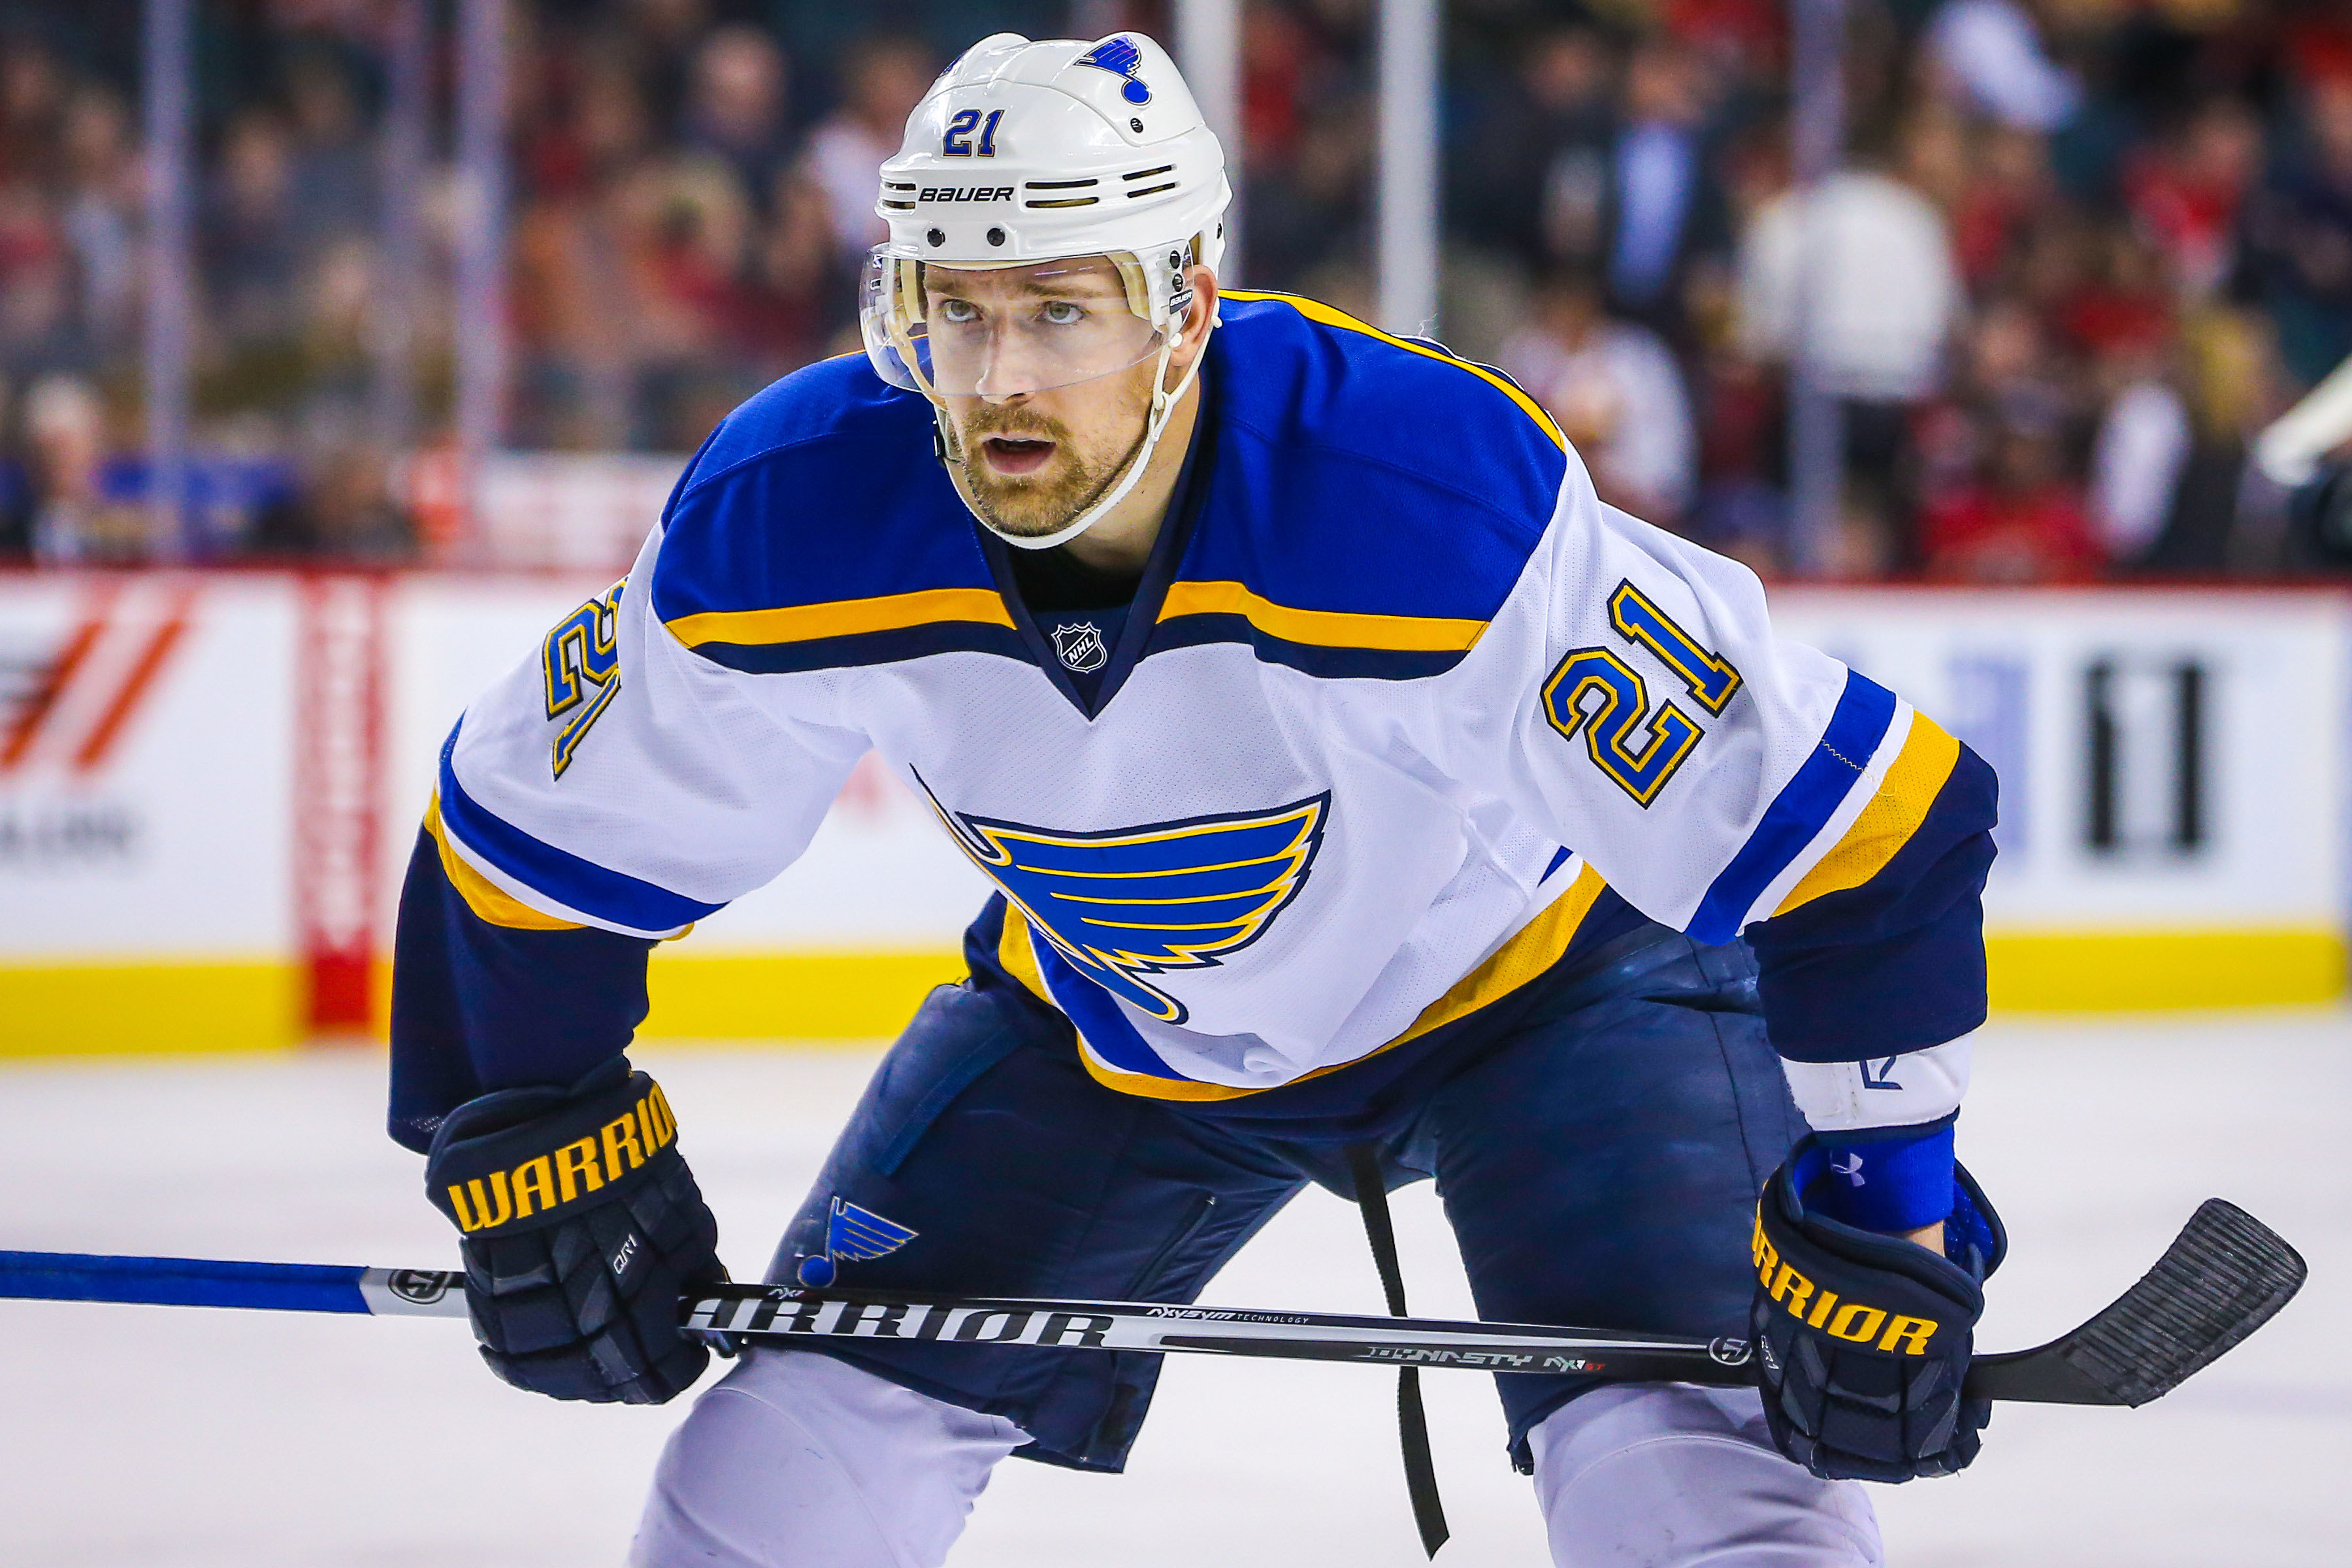 9214189-nhl-st.-louis-blues-at-calgary-flames